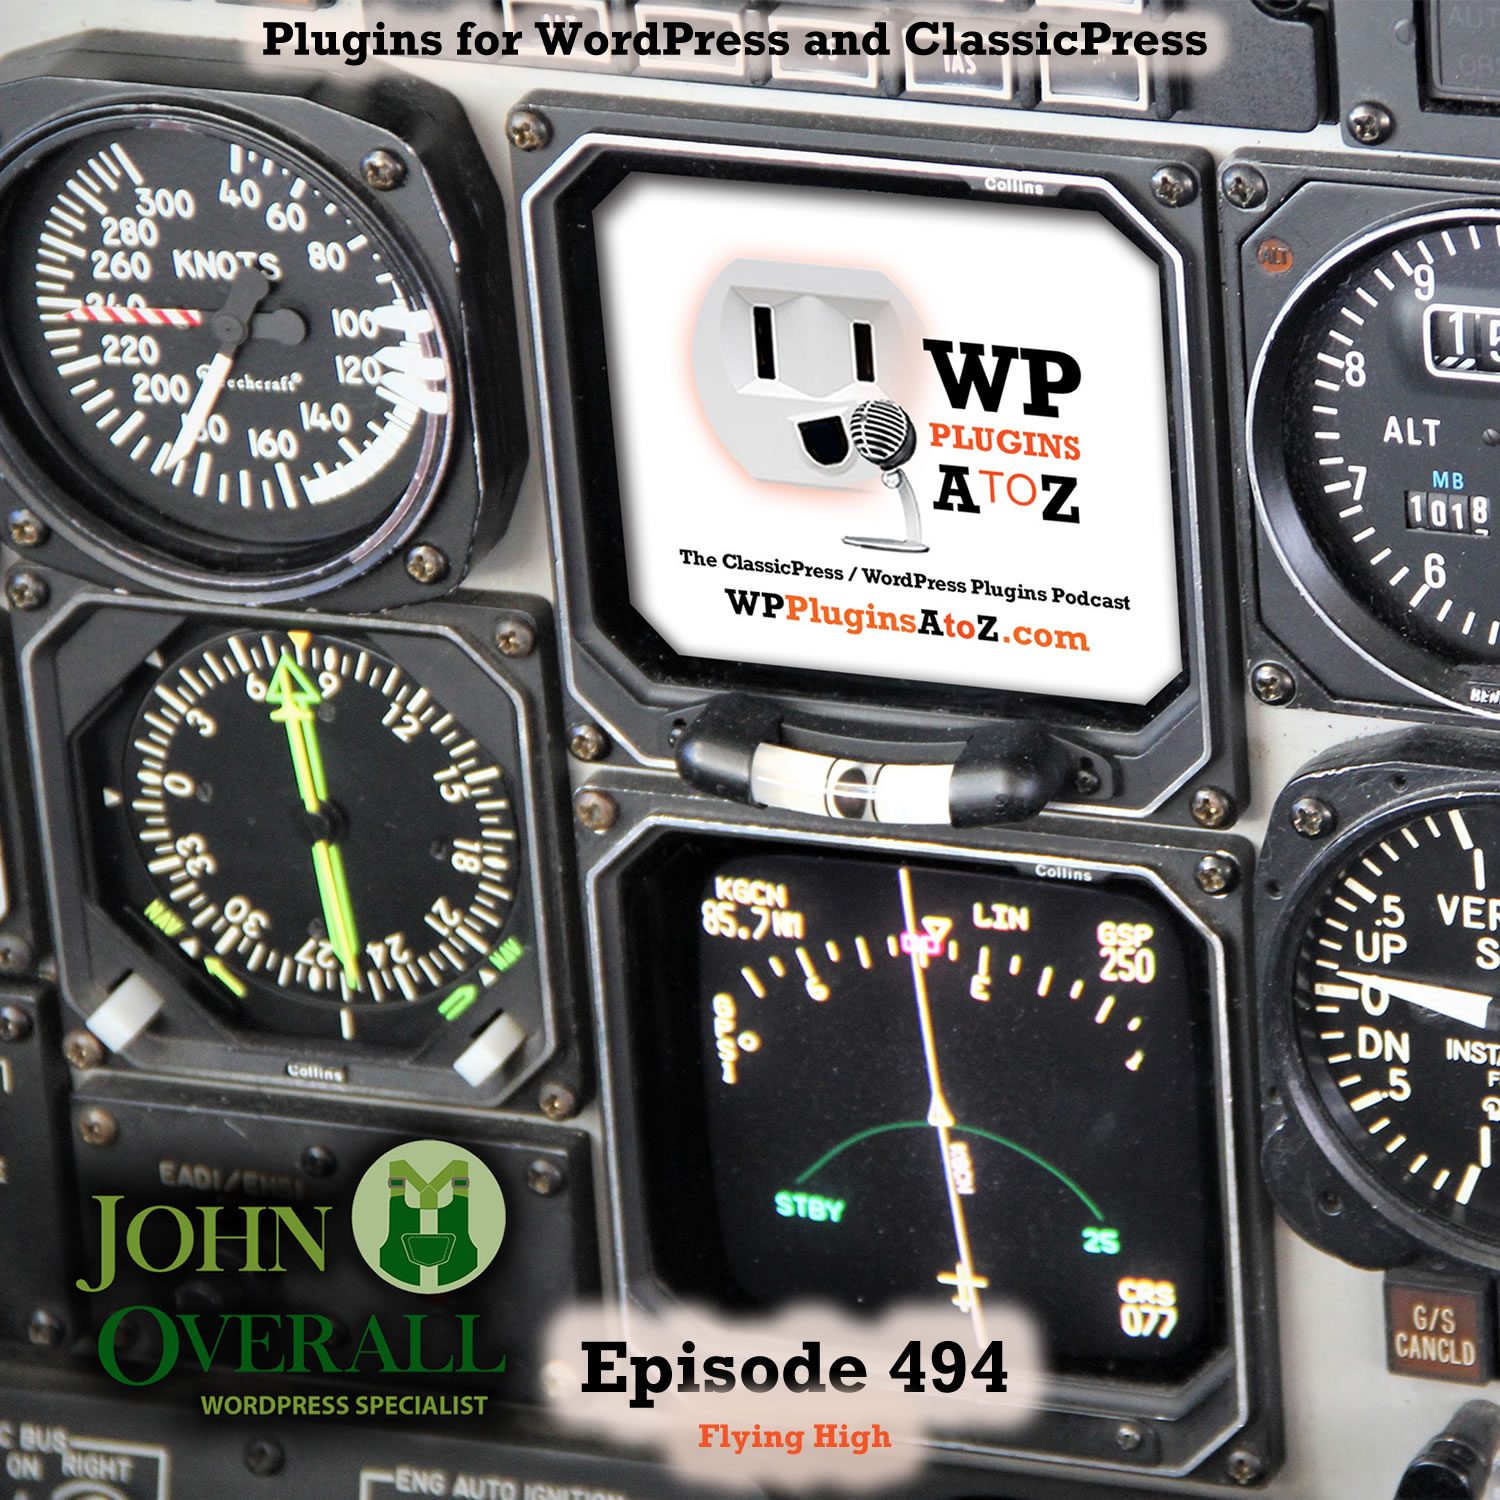 Flying High It's Episode 494 Time Tracking, Shortcodes, Brute Force Prevention, Unique Images, Changing Text, Passwords ..., and ClassicPress Options. It's all coming up on WordPress Plugins A-Z! Work Time Allocator, Password Policy Manager | Password Manager, WordPress Shortcodes Plugin — Shortcodes Ultimate, WordPress Brute Force Protection – Stop Brute Force Attacks, Text Filtering, Unique Headers and ClassicPress options on Episode 493.